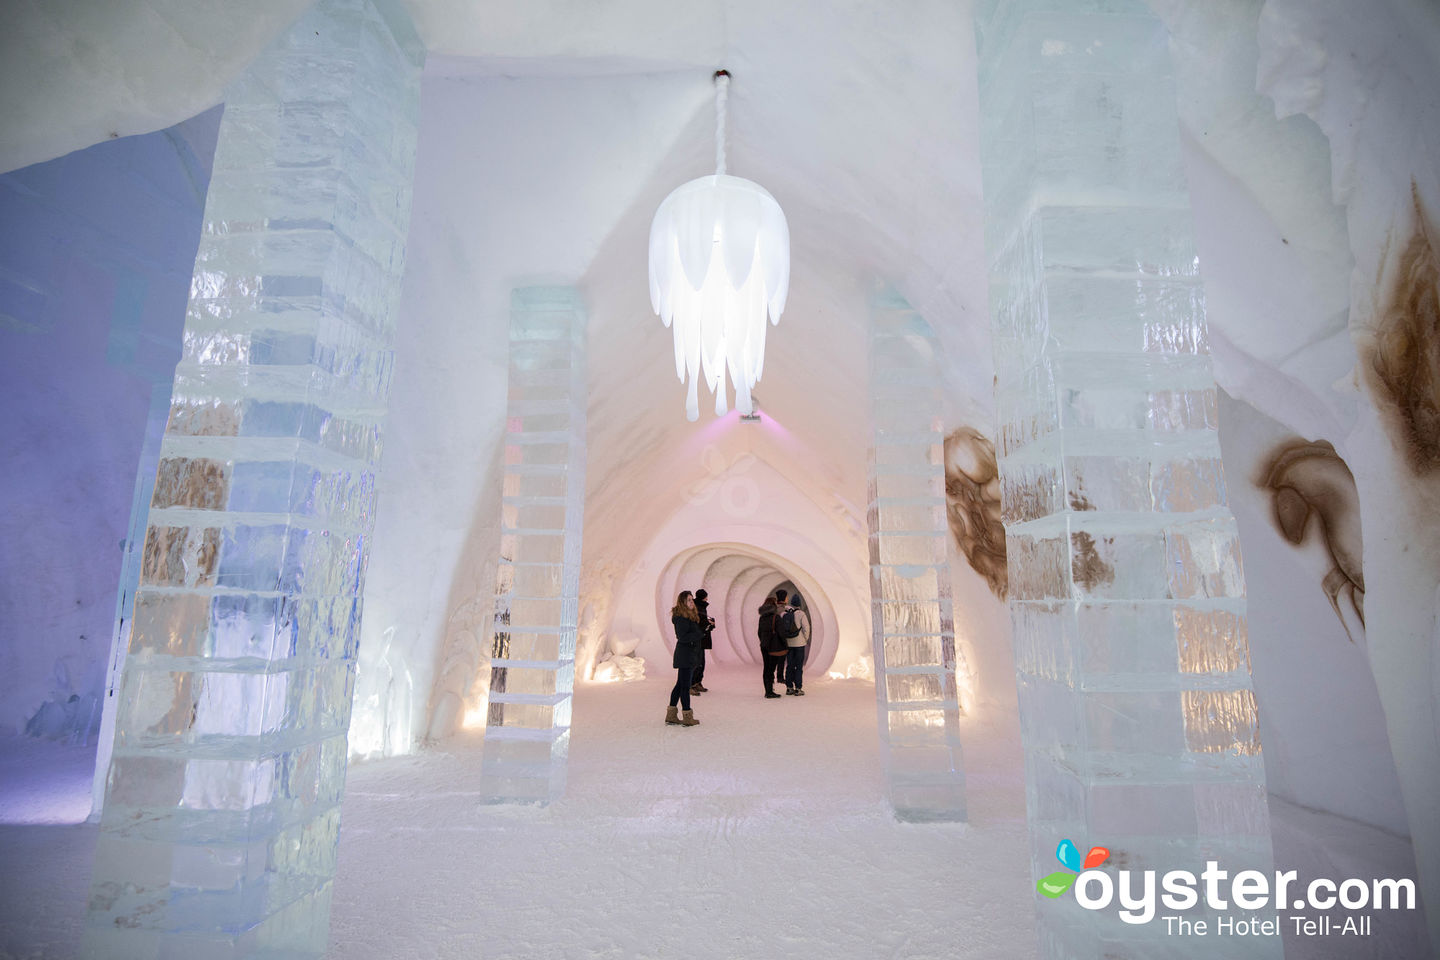 L Artigiano Del Lusso Bijoux hotel de glace review: what to really expect if you stay